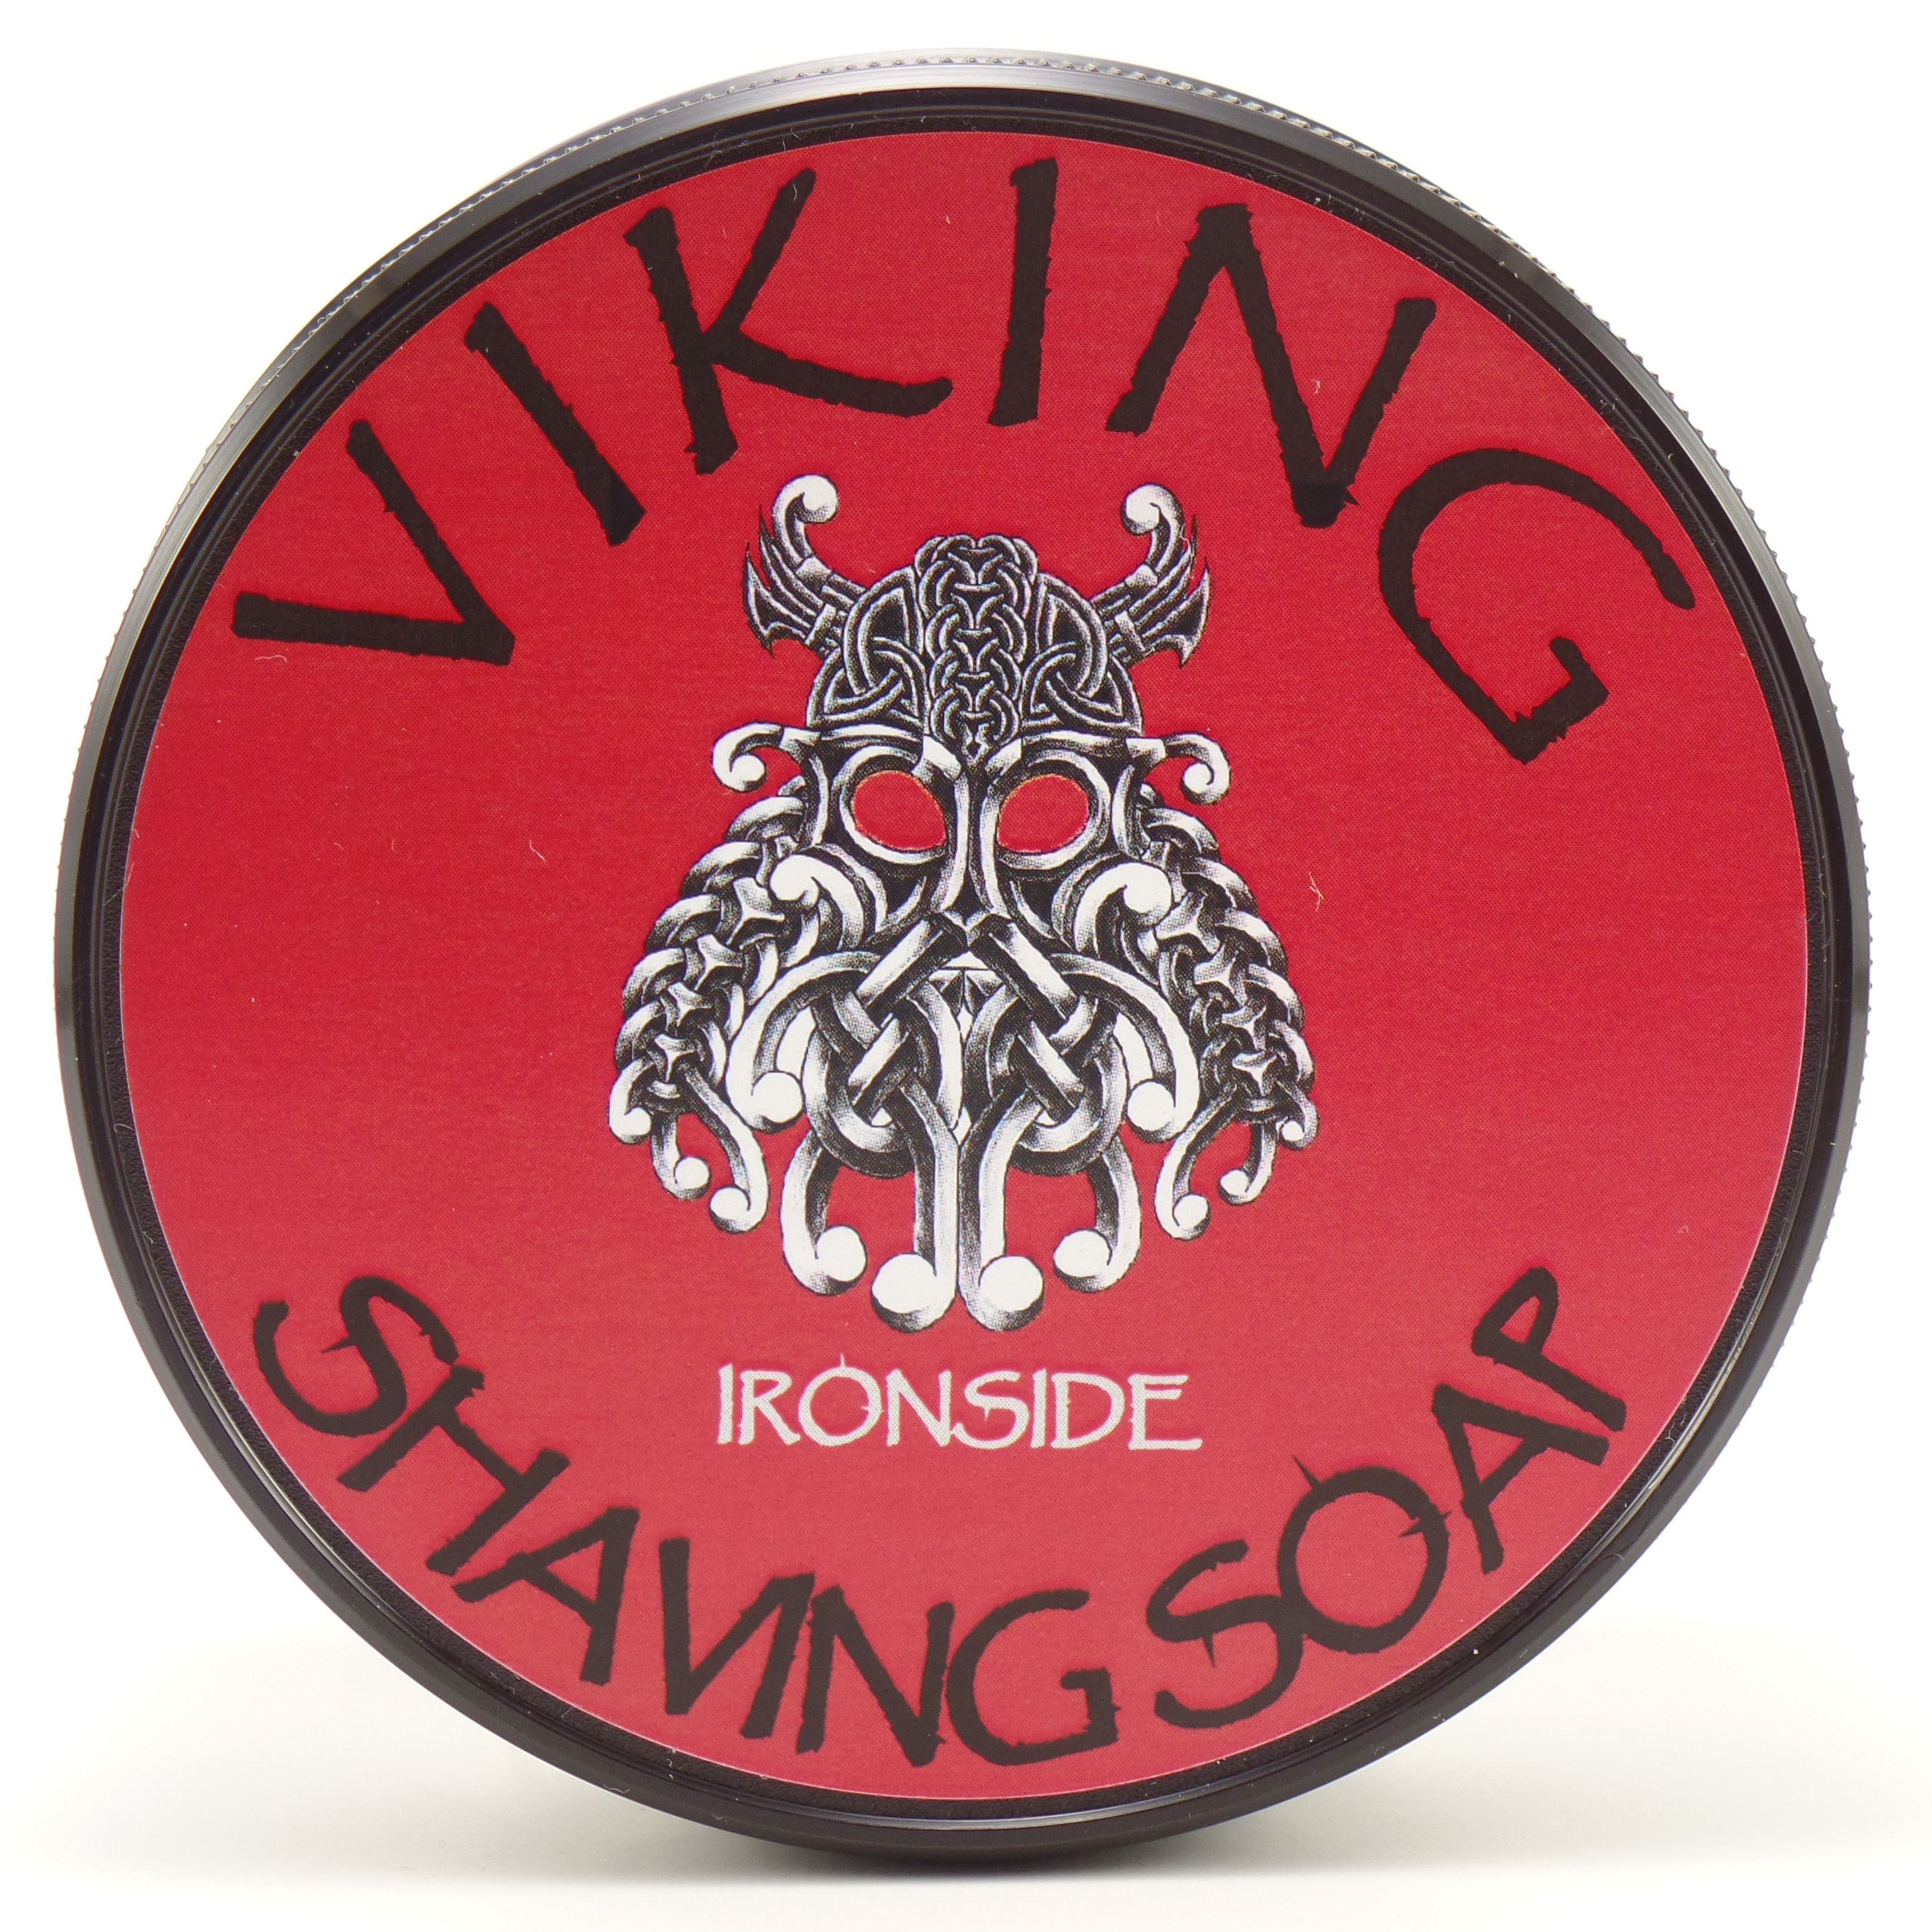 Viking Shaving Soap - Ironside - Soap image